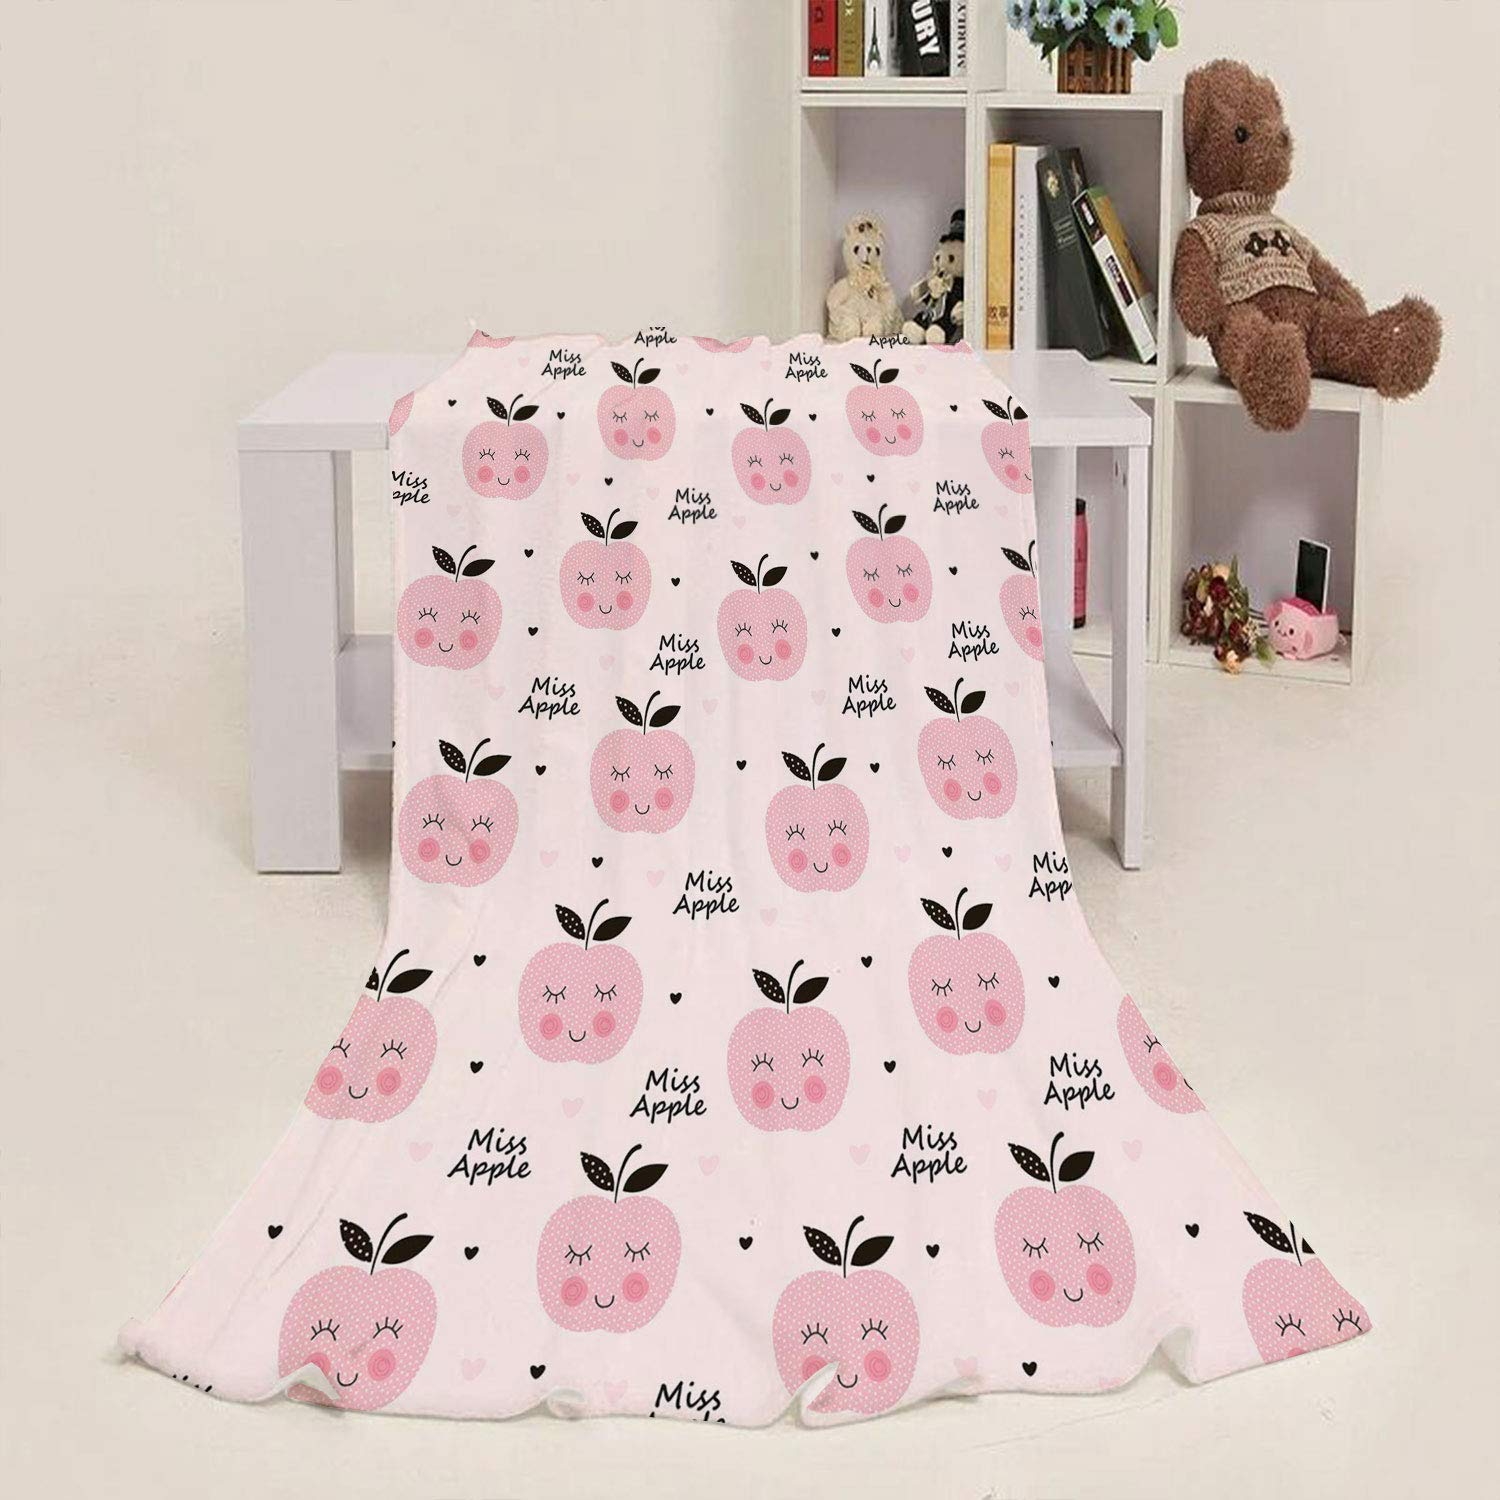 Printed Blanket Apple,Abstract Smiling Happy Apples Childish Baby Kids Girls Pattern Cute Characters,Pale Pink Black 50''x 70'' Elegant Home Kids Soft & Warm